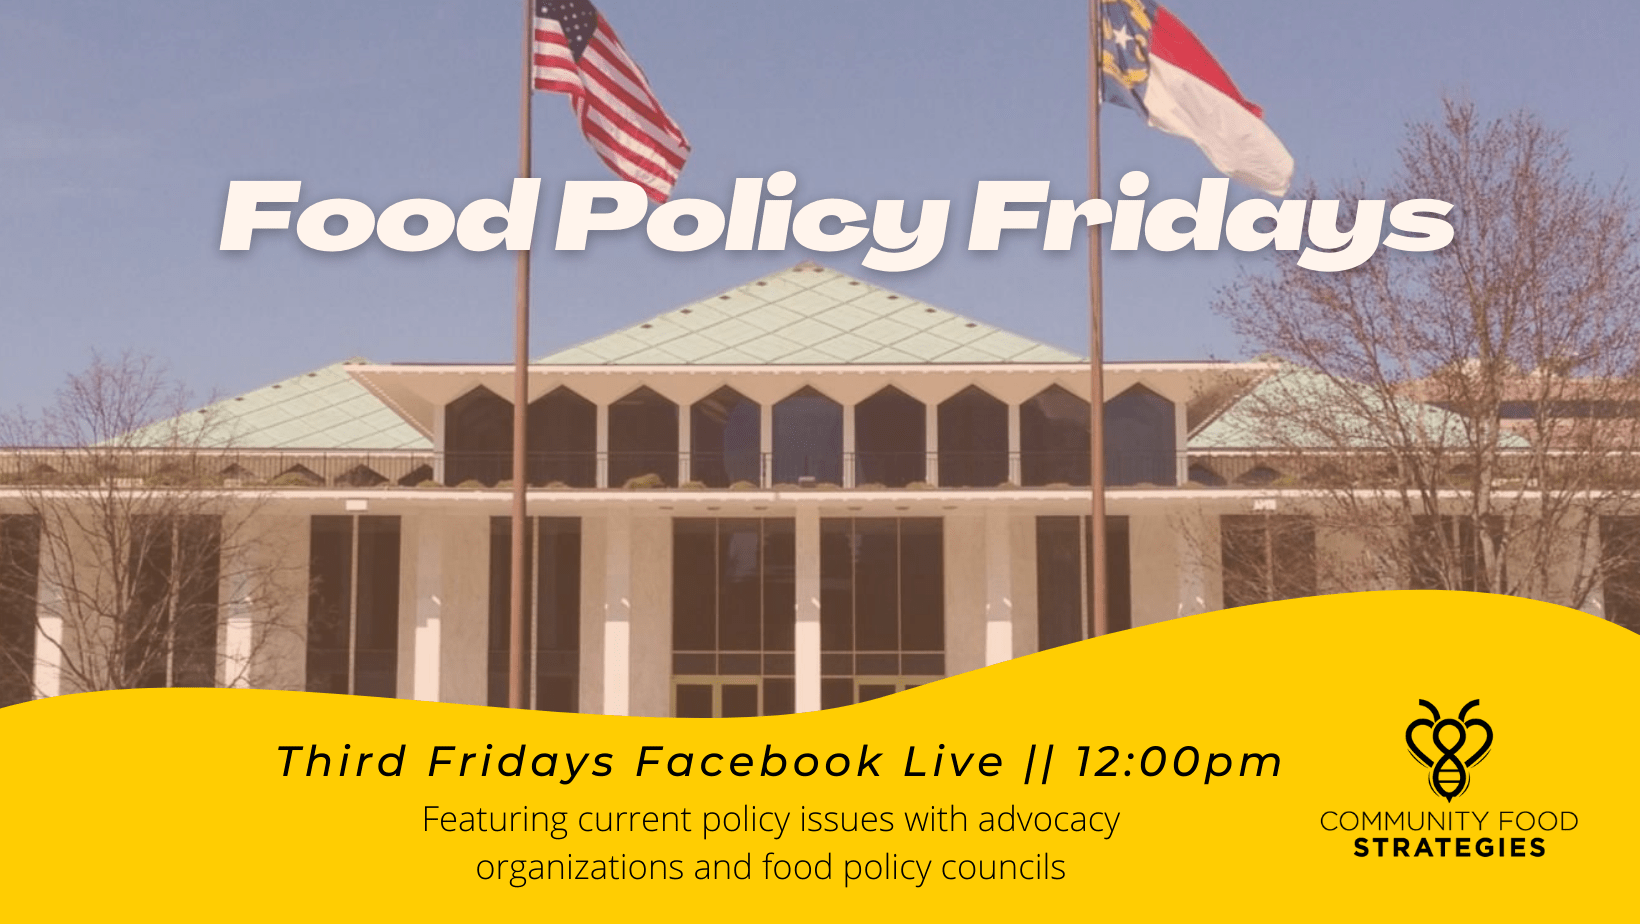 Food Policy Fridays on Facebook Live